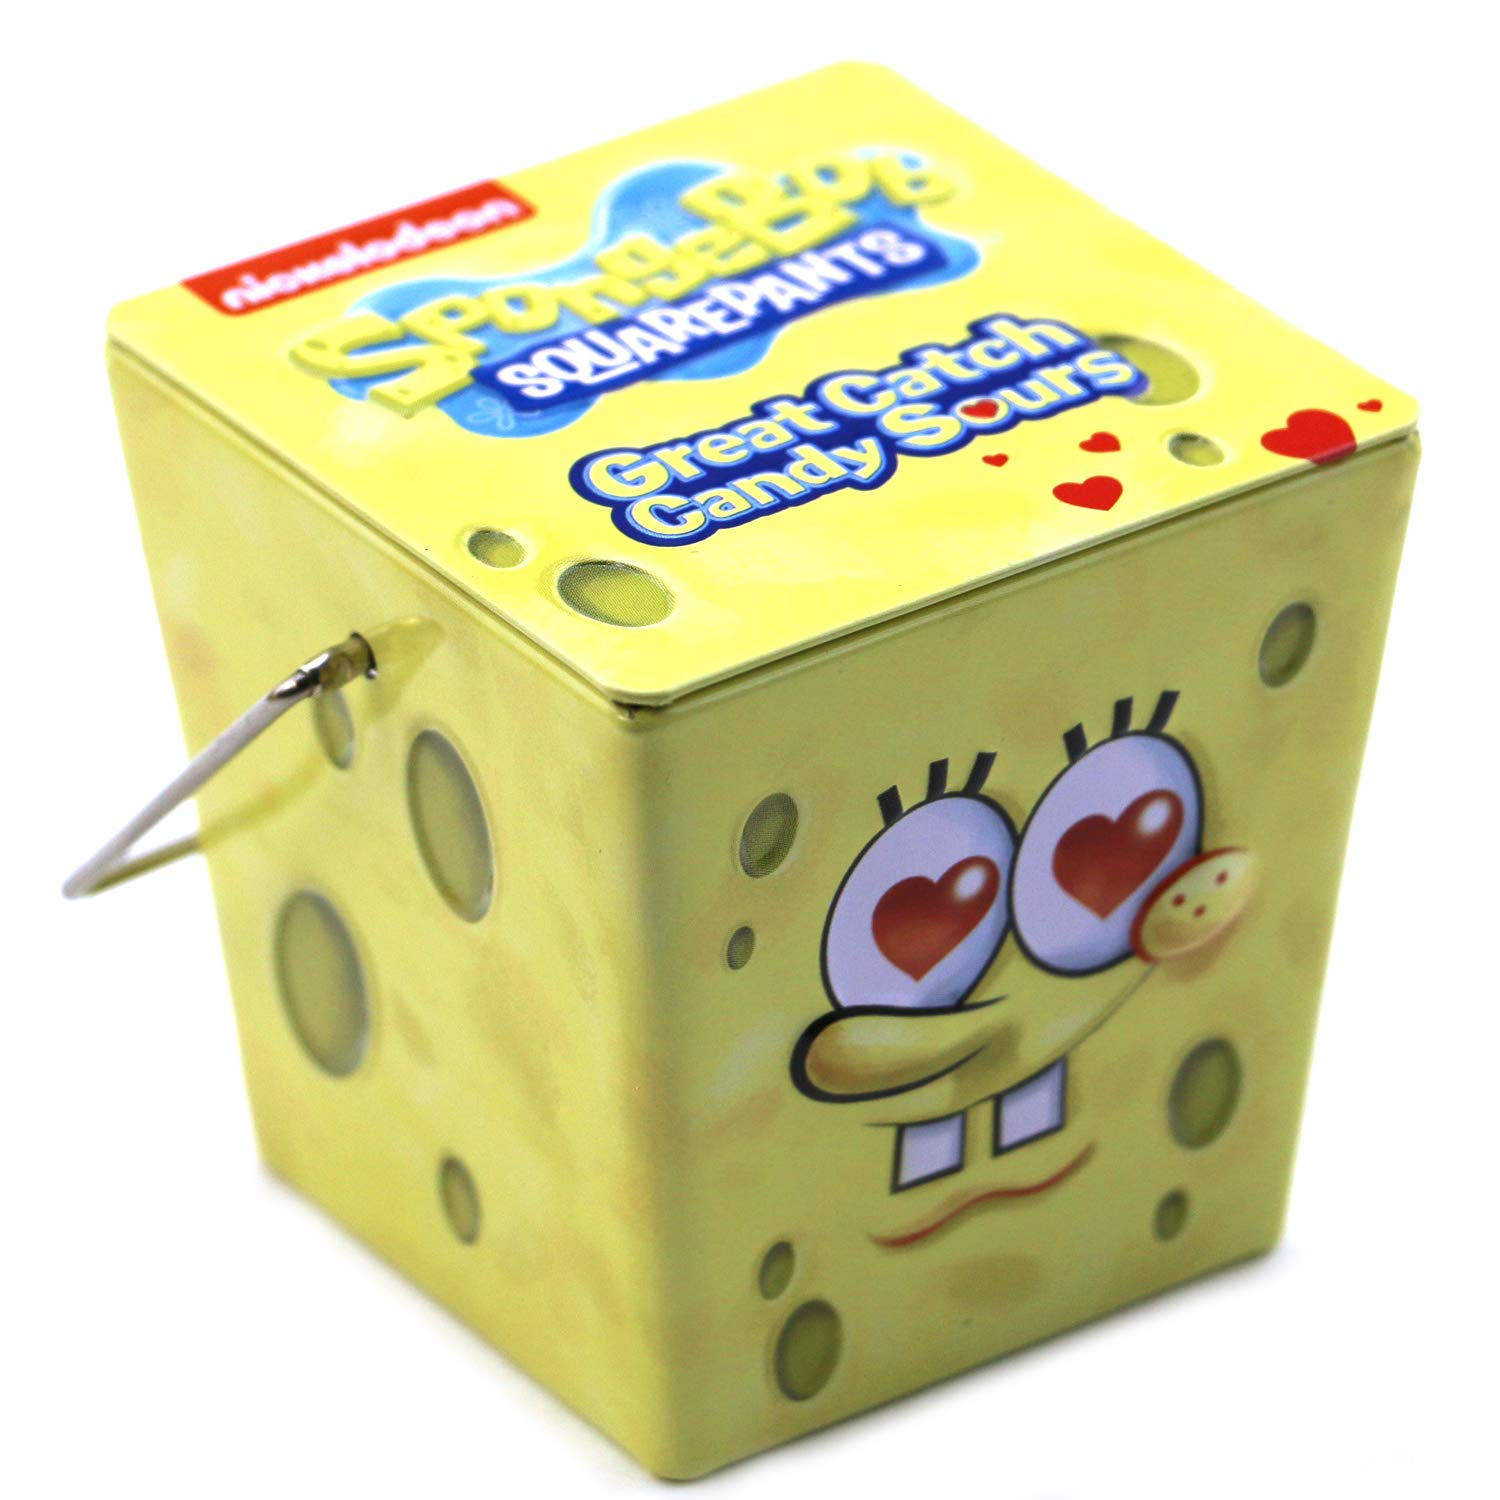 SpongeBob Great Catch Square Bucket Tin Candy (2 Pack) Strawberry Lemonade Flavor Heart Shaped Gift Stuffers with 2 GosuToys Stickers